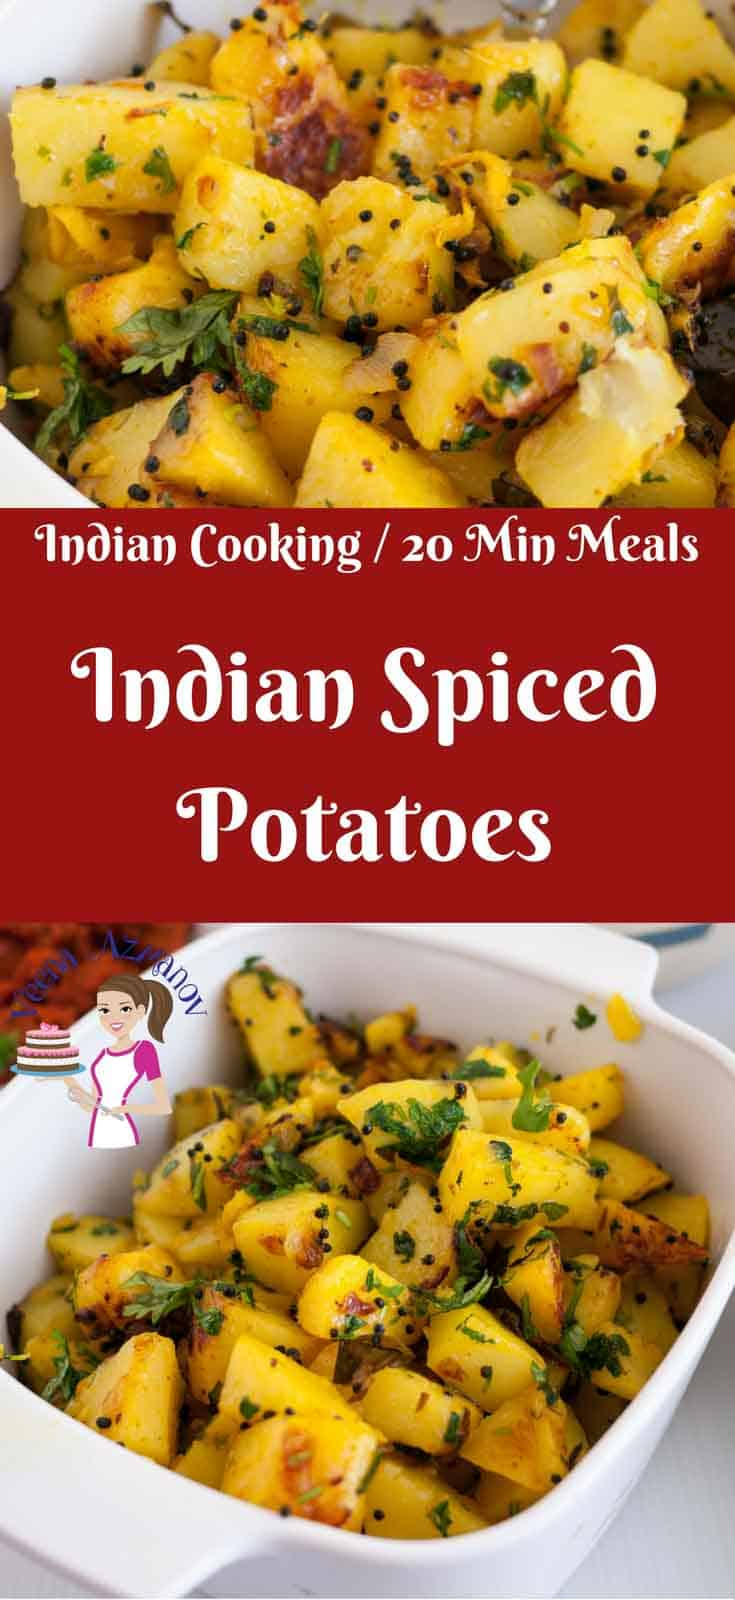 These quick Indian Spiced Potatoes has got to be the quickest Indian dish you can ever make!! Simple, easy and effortless; gets ready in 20 minutes or less. This very versatile dish can be served on it's own or as a side dish paring with a delicious main course.